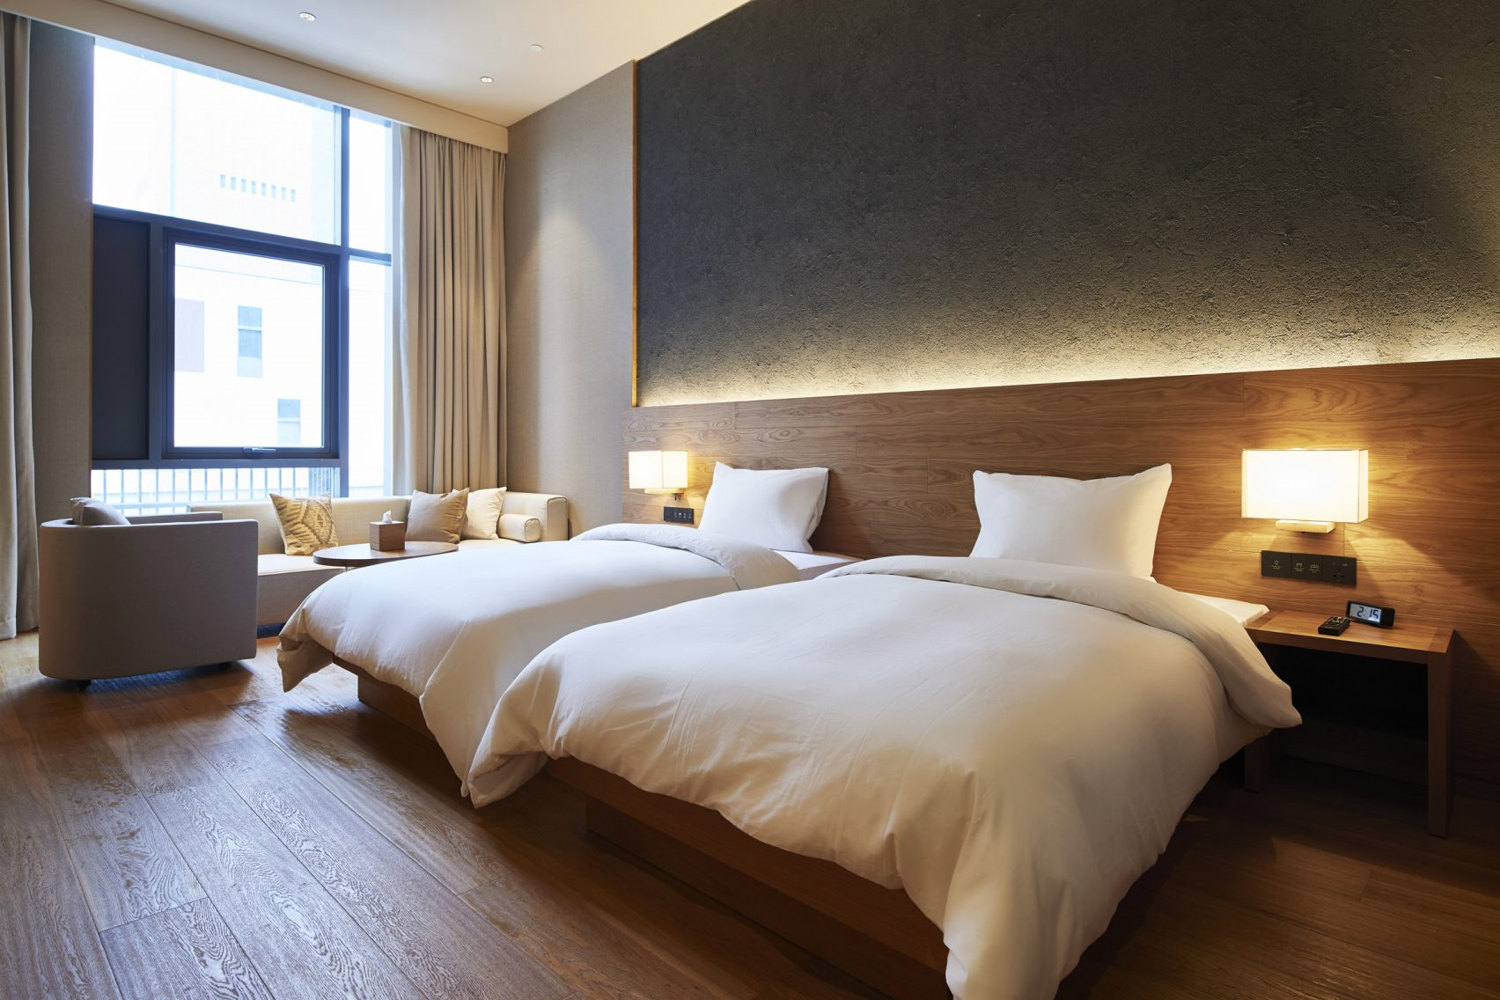 Hotel Room Design Trends What Travellers Want In Their